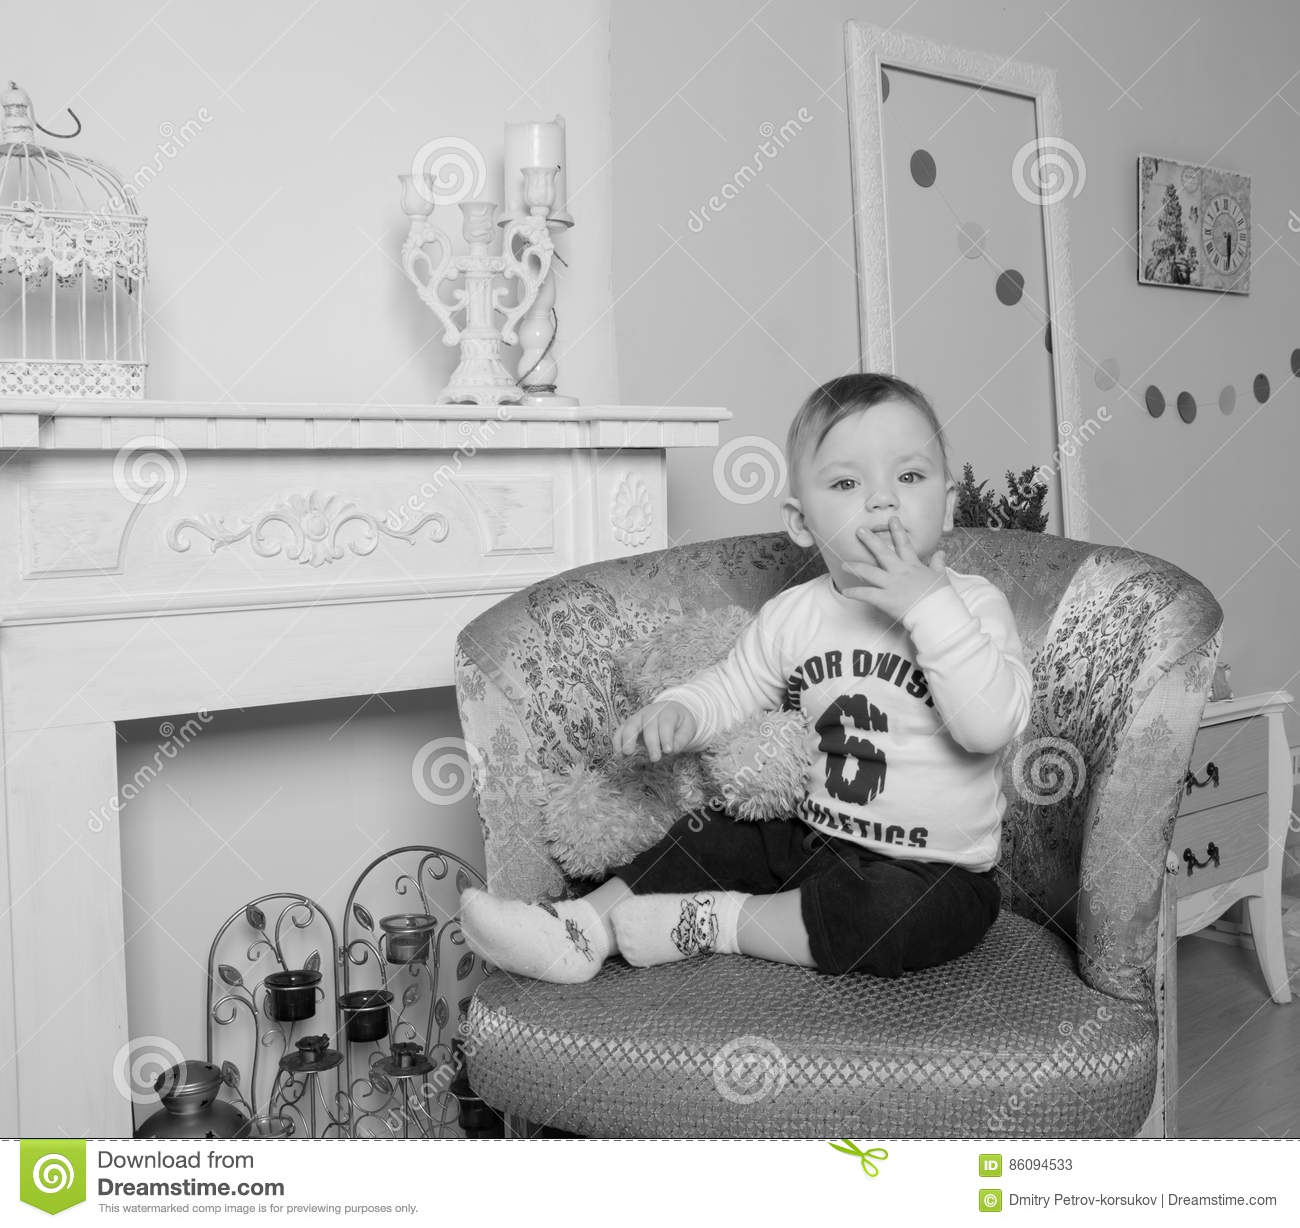 Black Child Sitting In Chair - Near the fireplace in the living room child on chair black and white